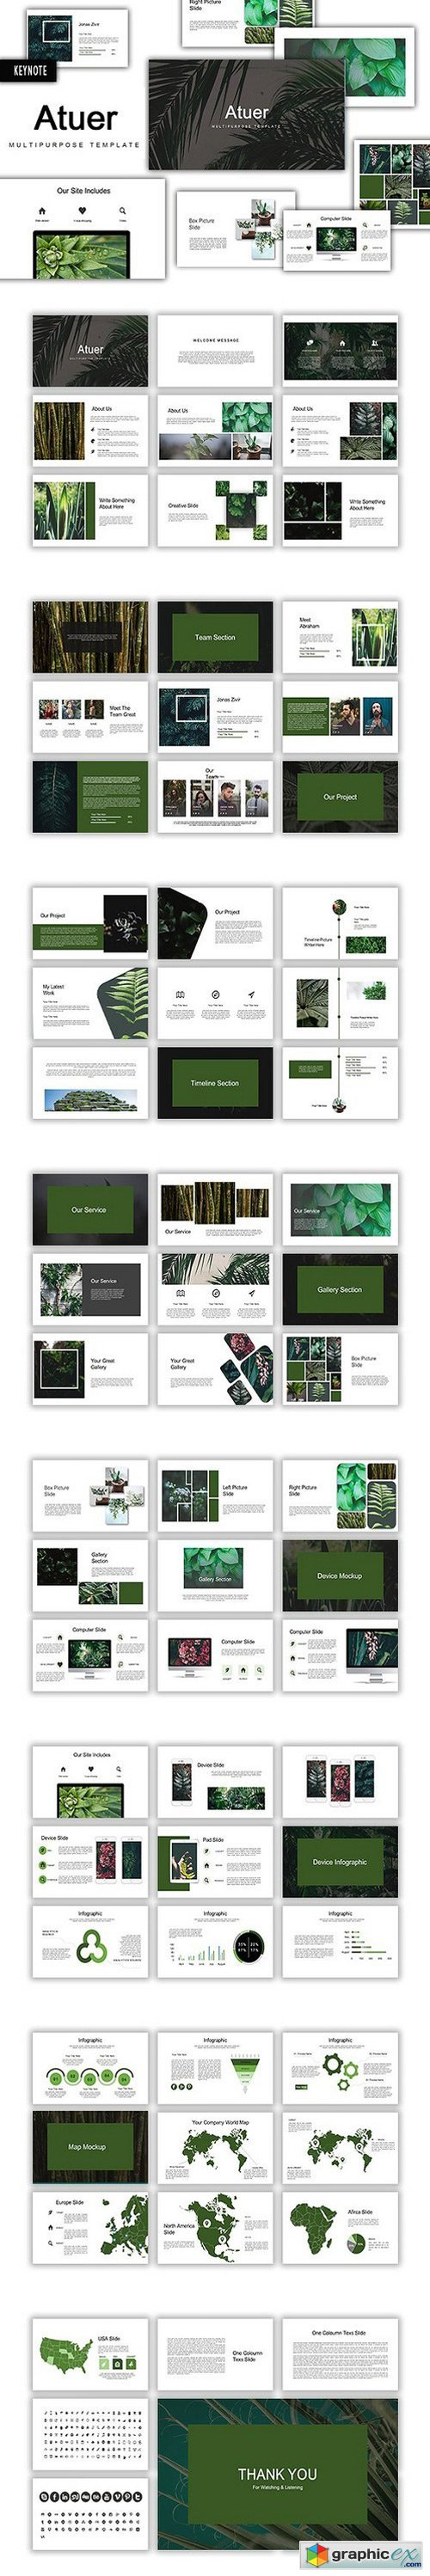 Atuer Keynote Template